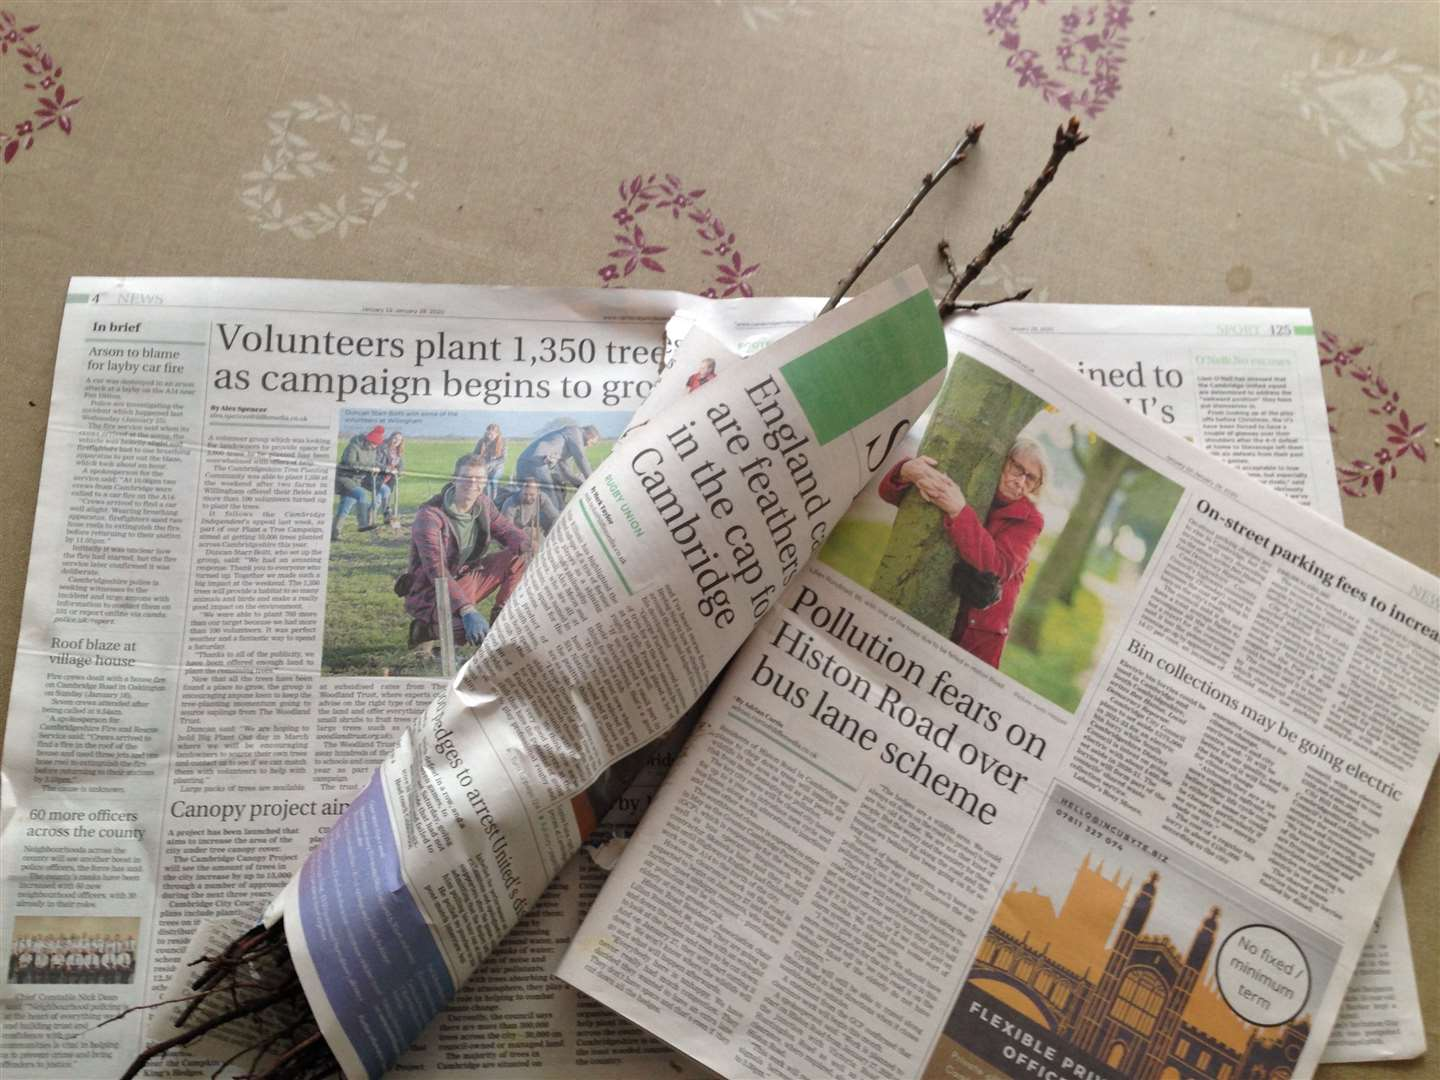 Wrapping oak saplings in a copy of the Cambridge Independent: the trees will be planted in Melwood in Meldreth, alongside the River Mel, in celebration of the film 'Waterlight' that James Murray-White made about the life of the river last year - visit https://waterlightproject.org.uk